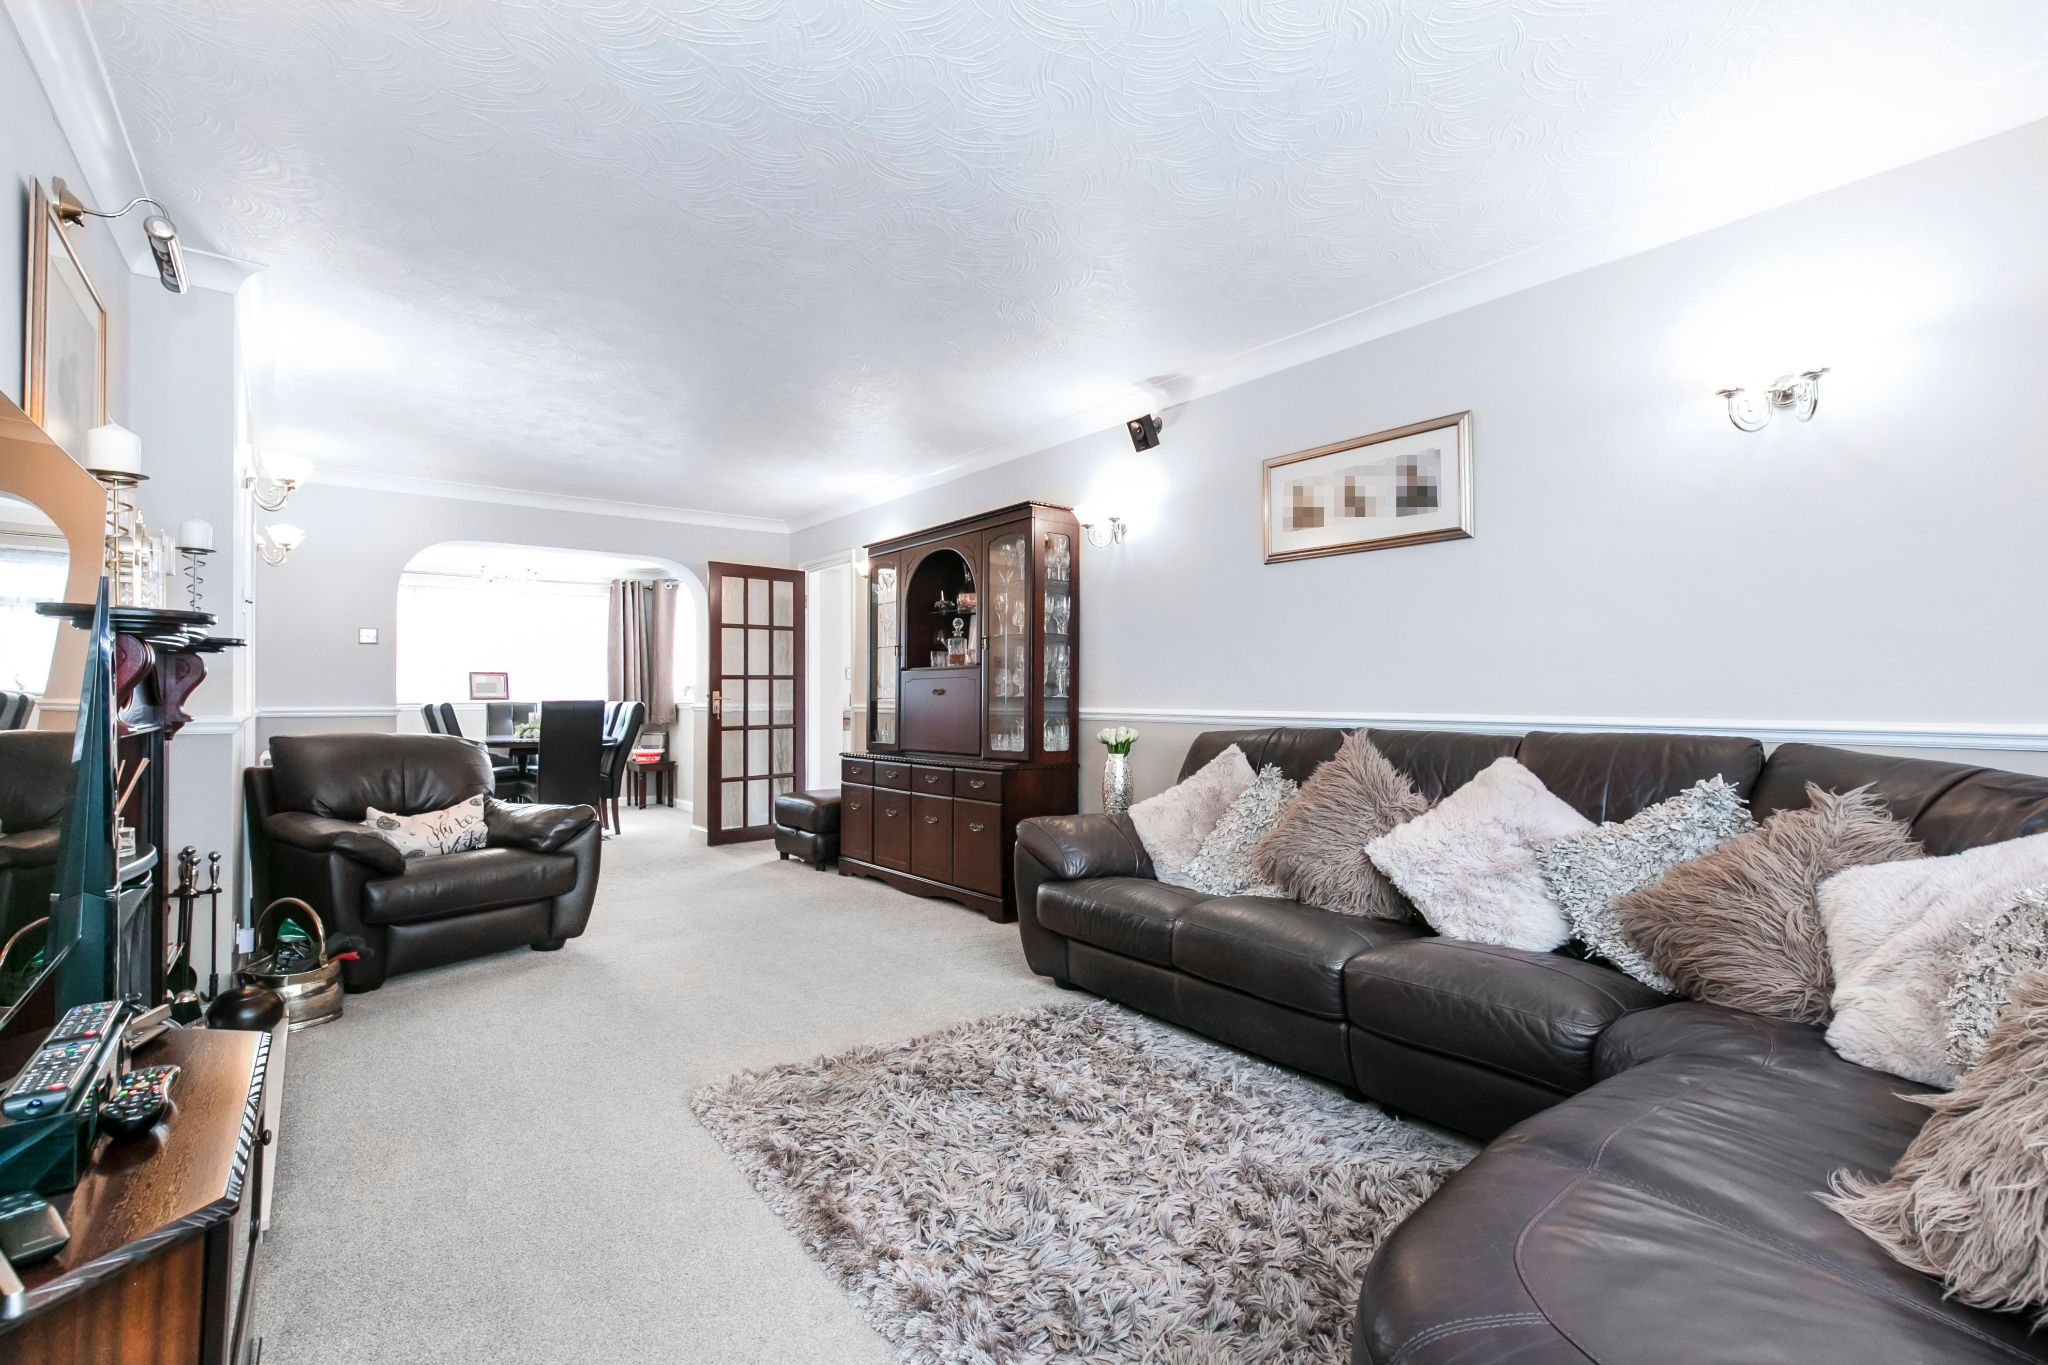 4 bedroom detached house For Sale in Potters Bar - Photograph 6